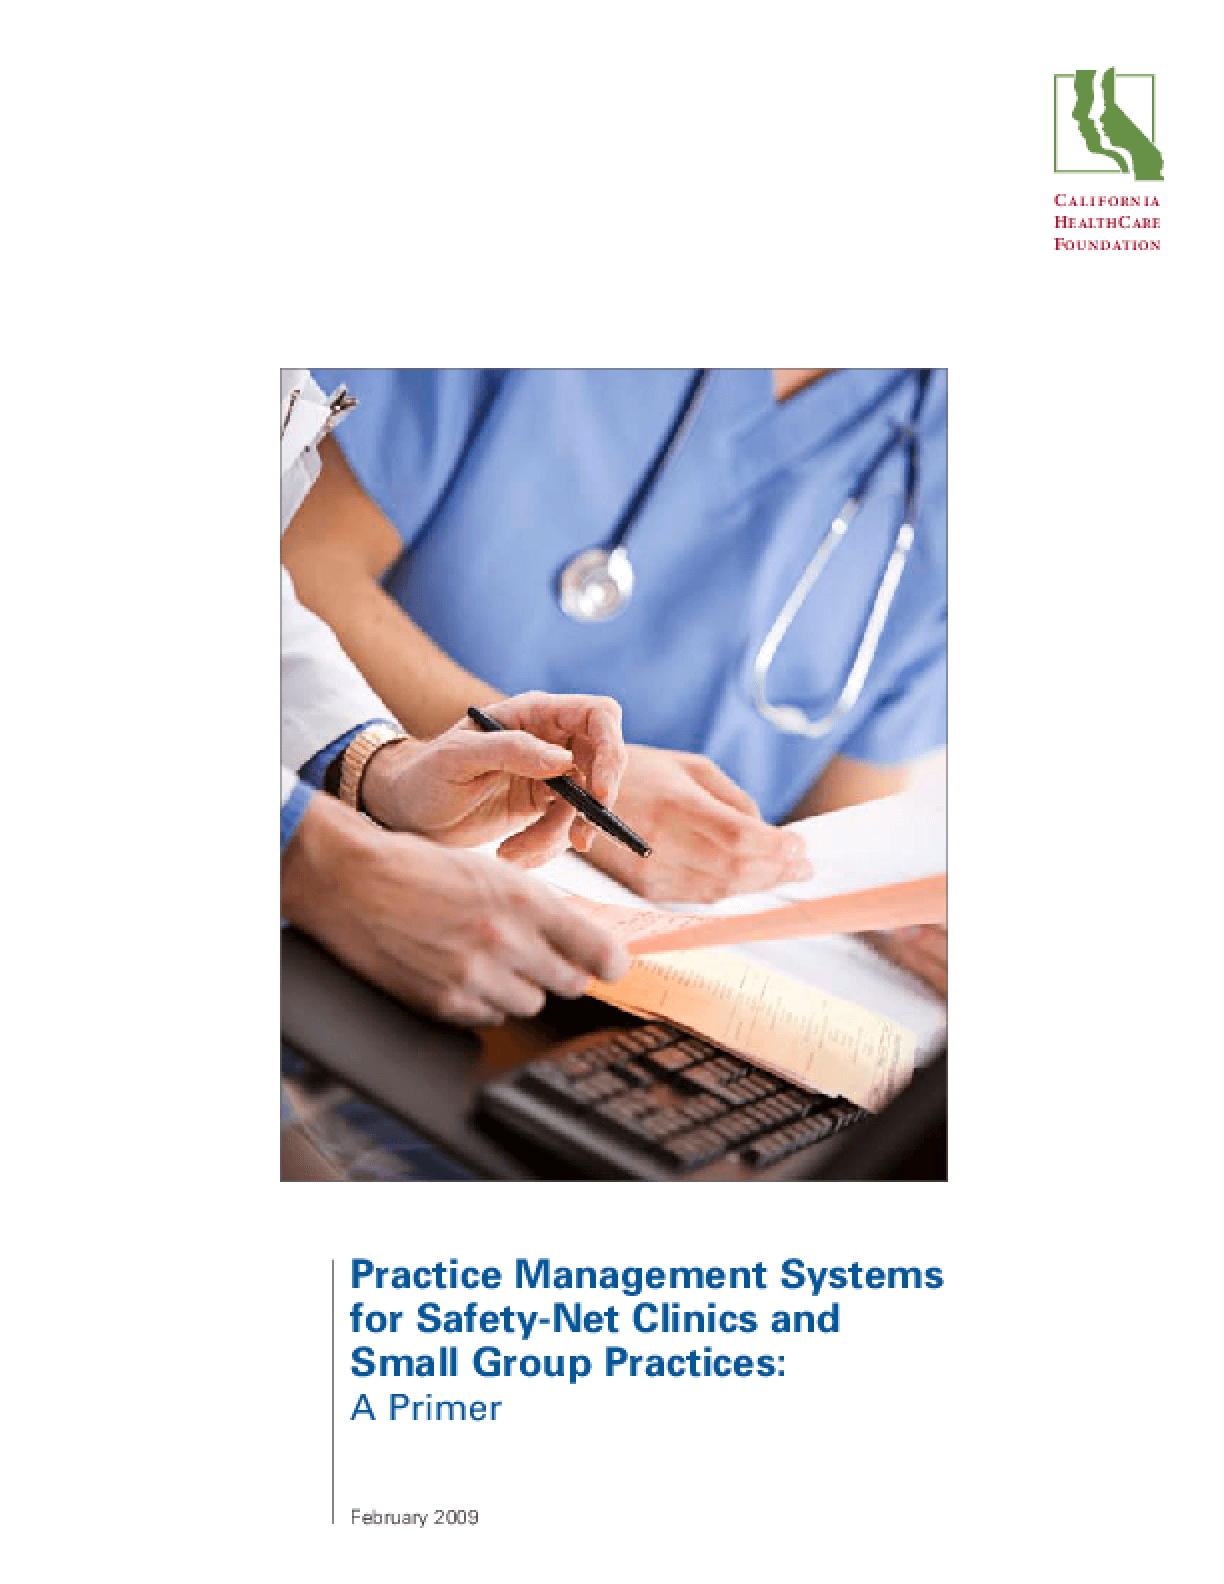 Practice Management Systems for Safety-Net Clinics and Small Group Offices: A Primer